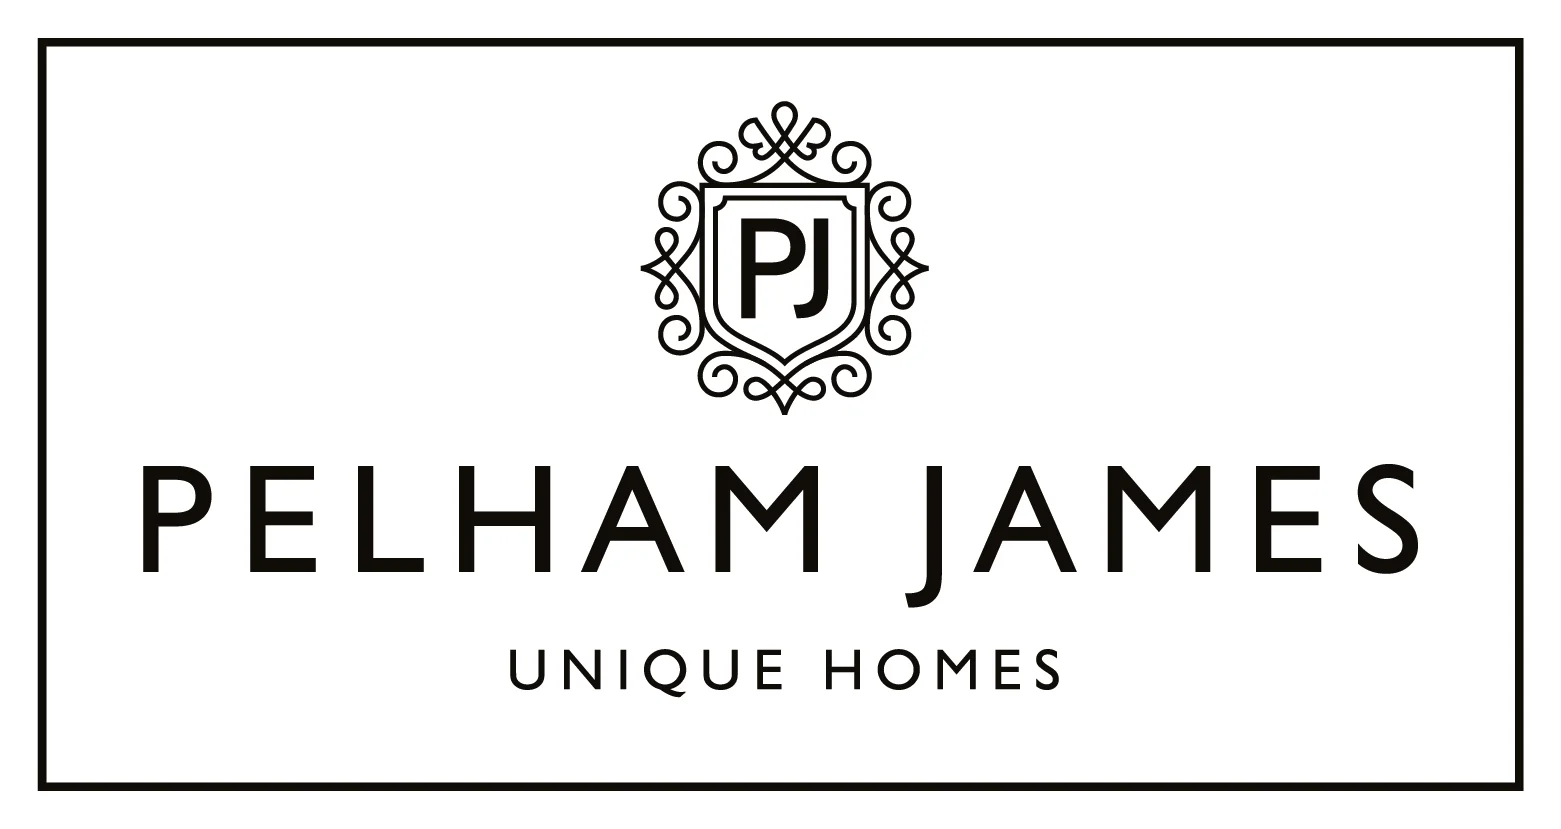 Testimonial from Pelham James - Unique Homes